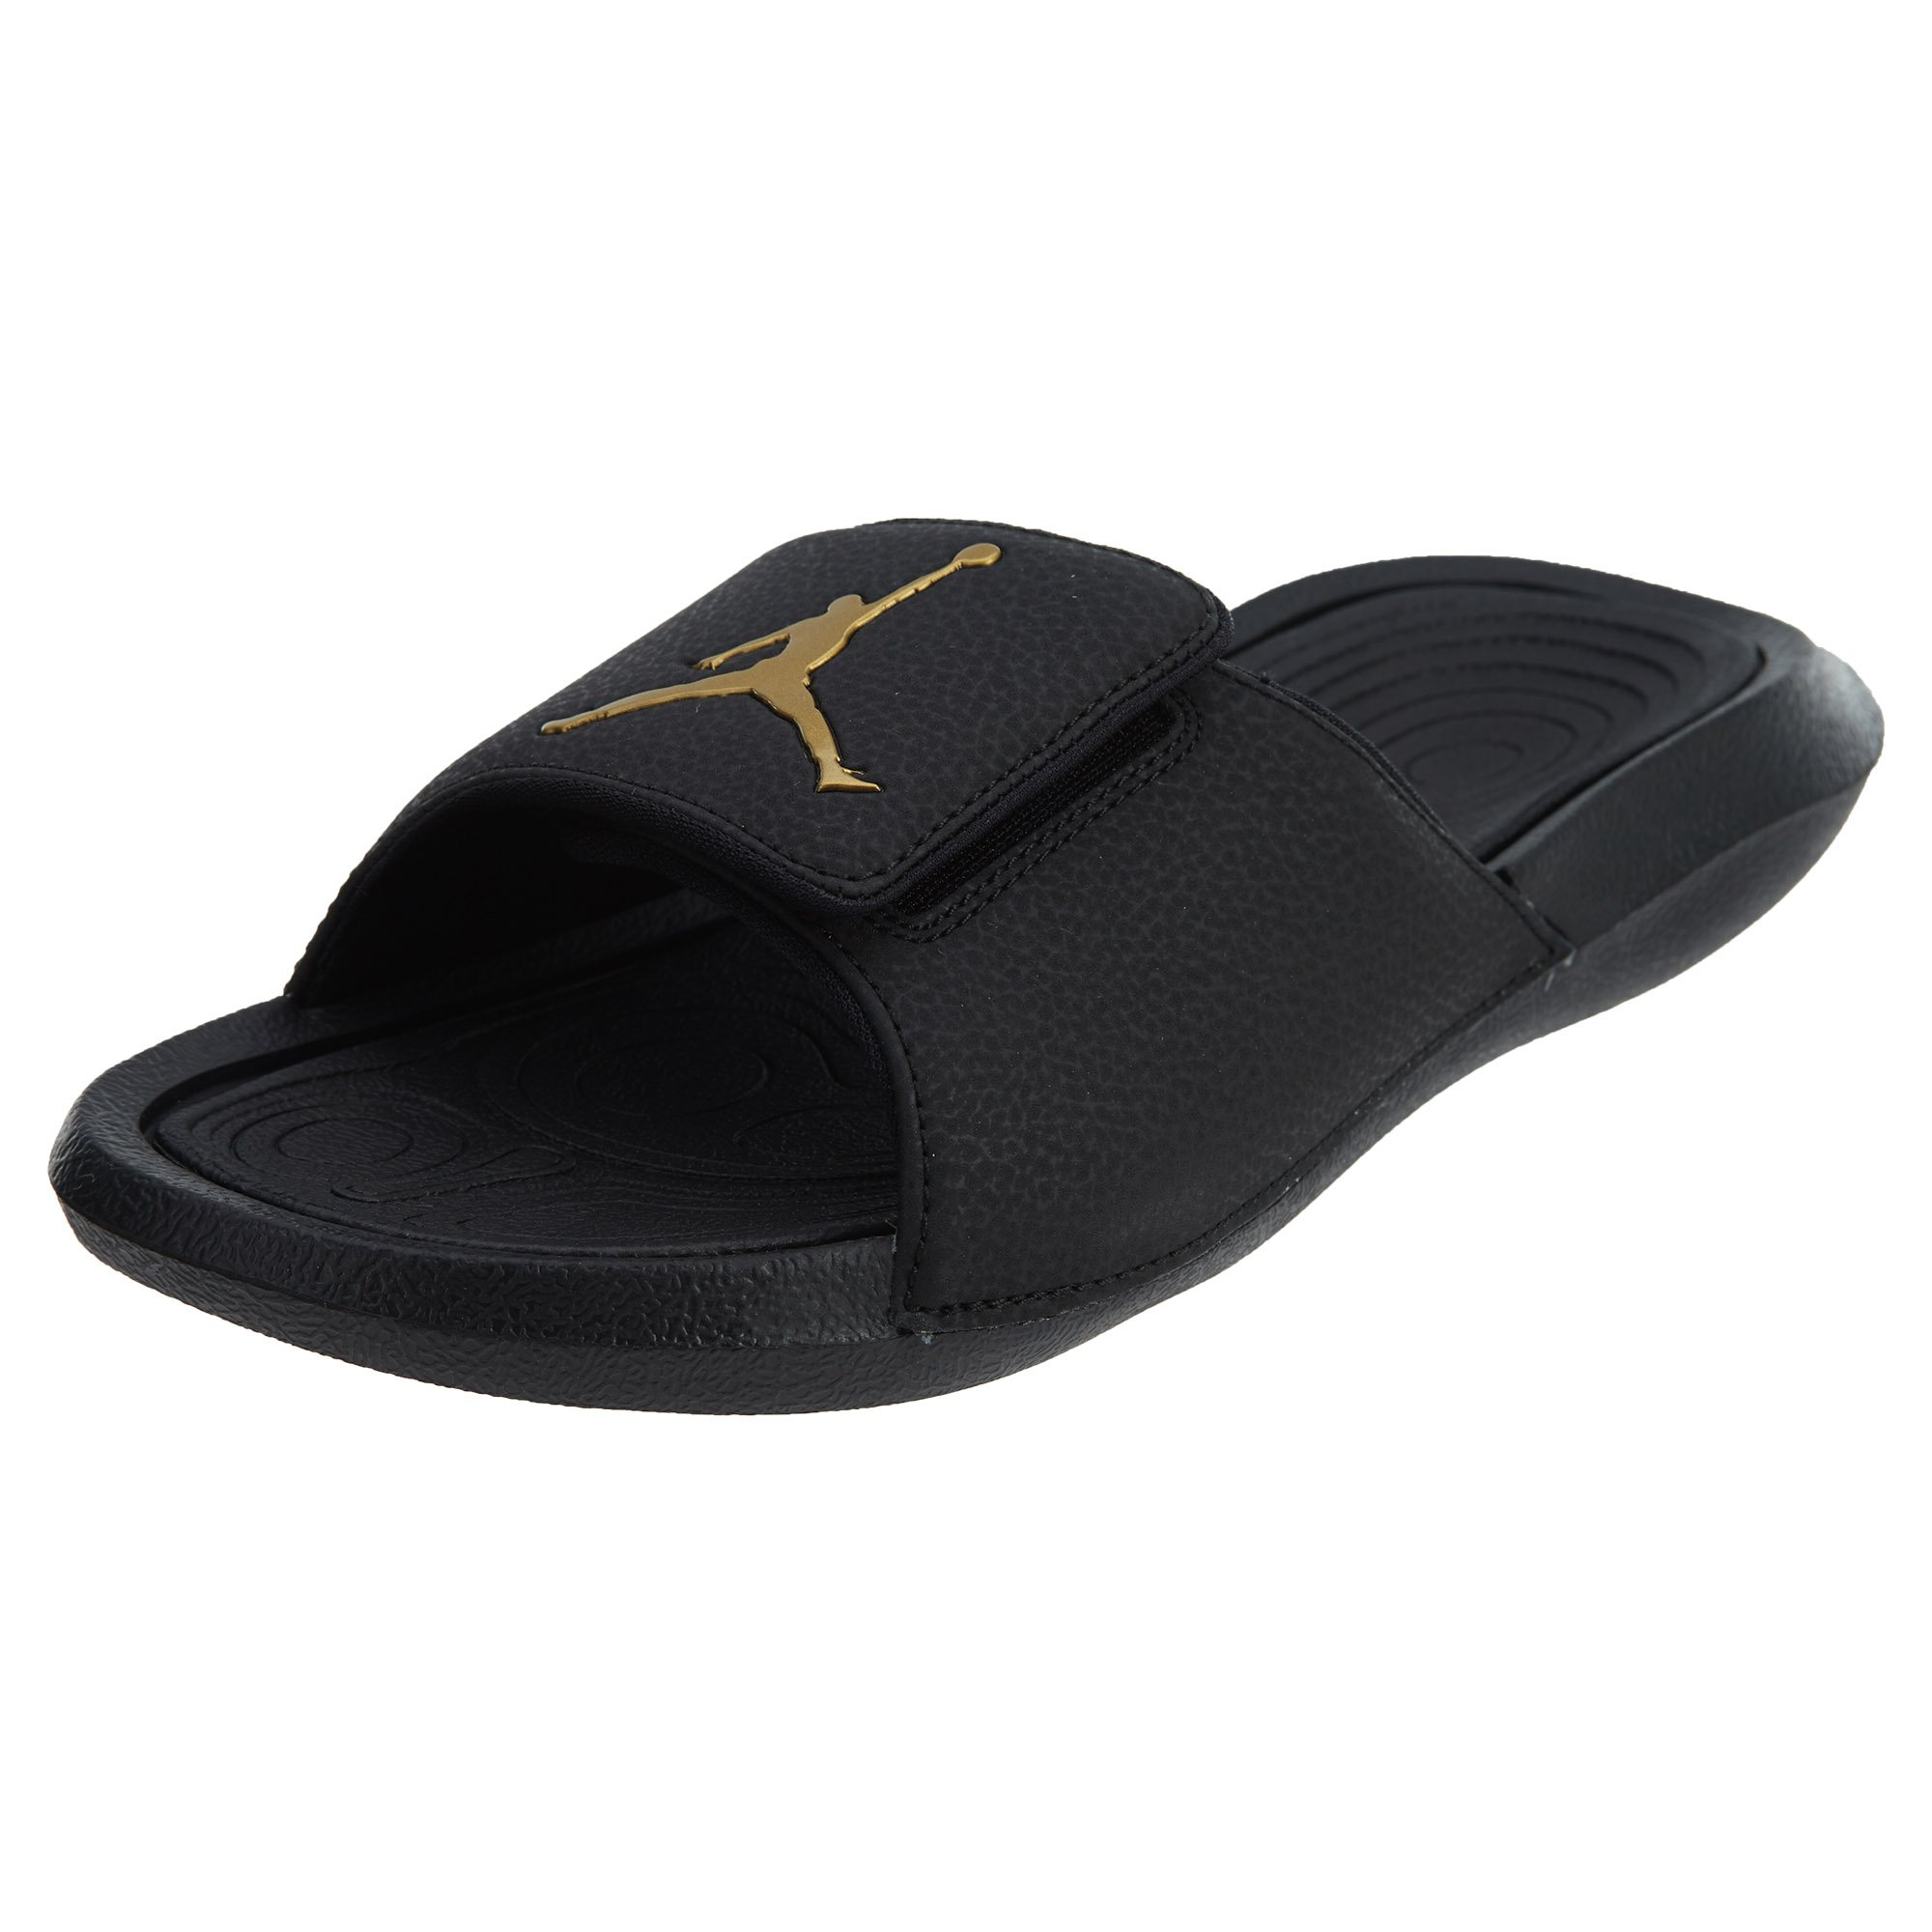 7920aff187bbe5 Get Quotations · Jordan Hydro 6 Men s Slides Black Metallic Gold 881473-033  (12 D(